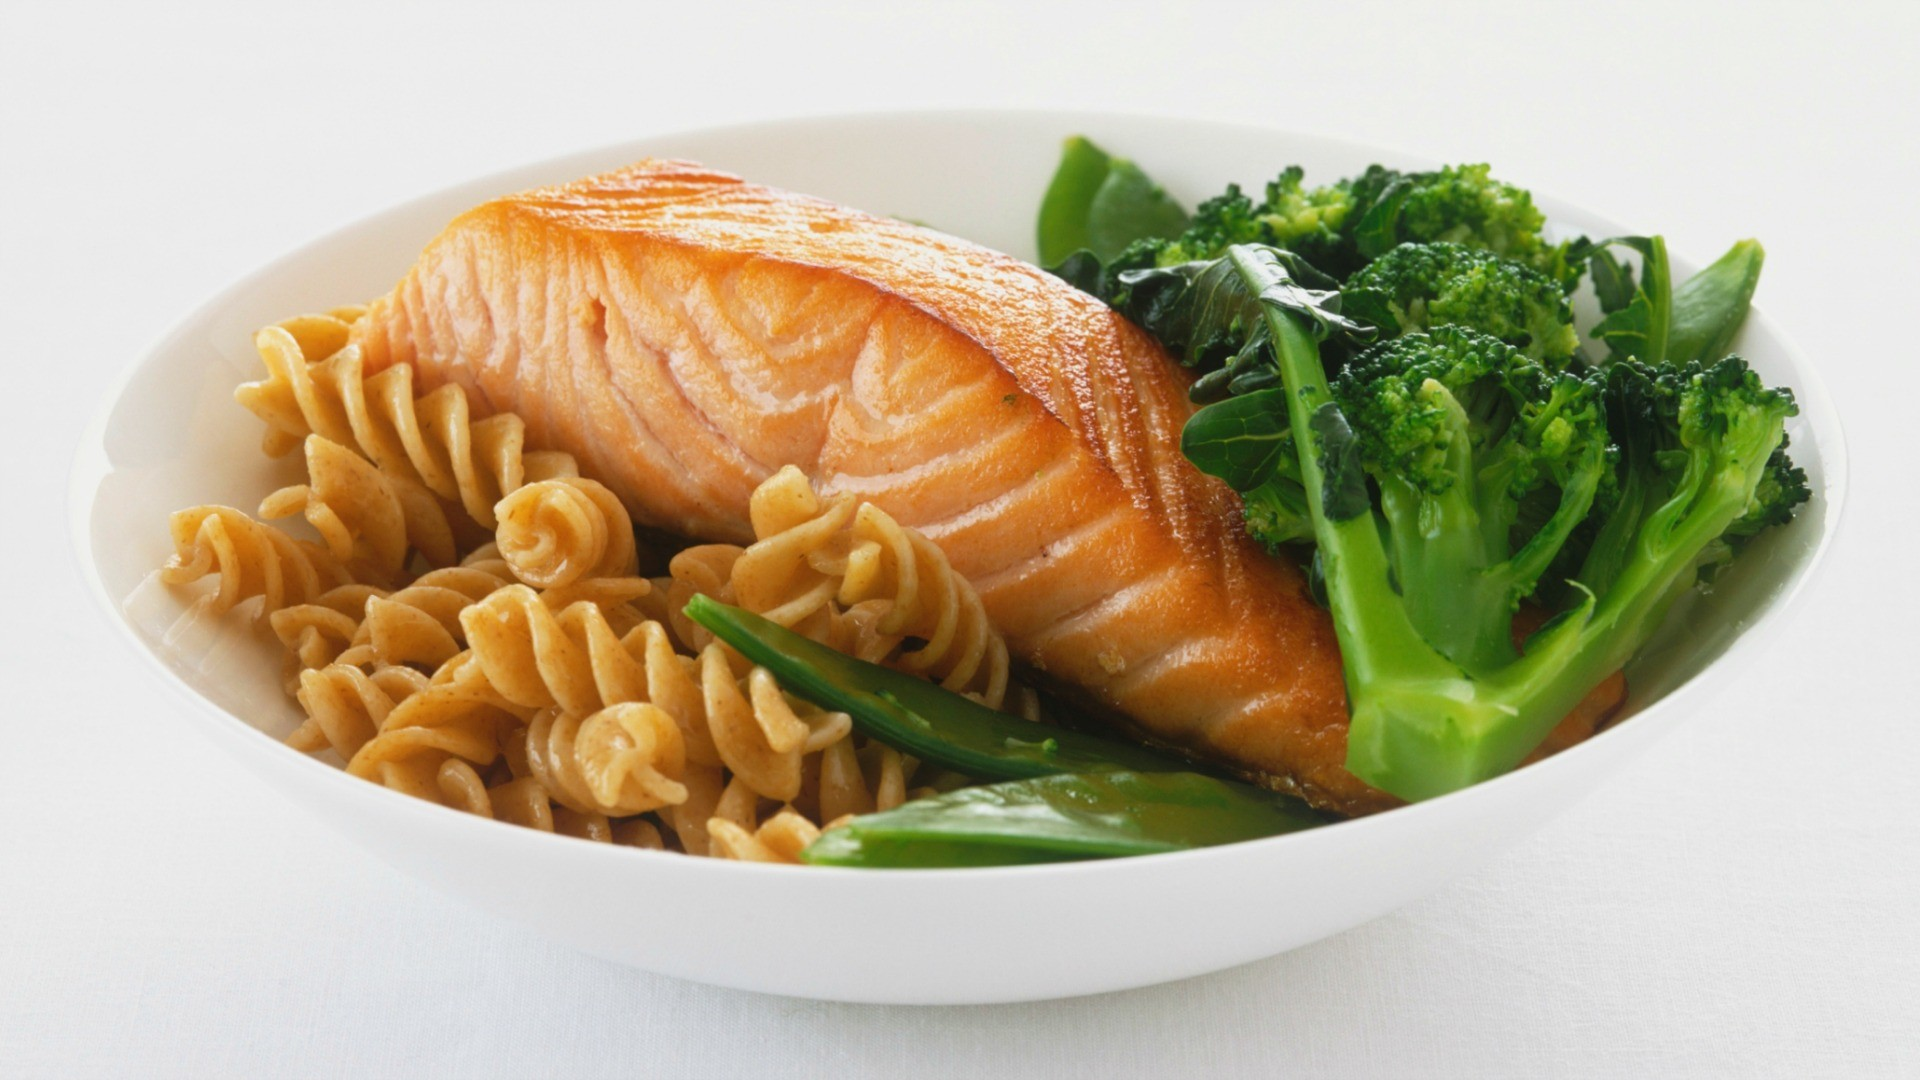 Healthy food choices play a big part in eliminating body fat